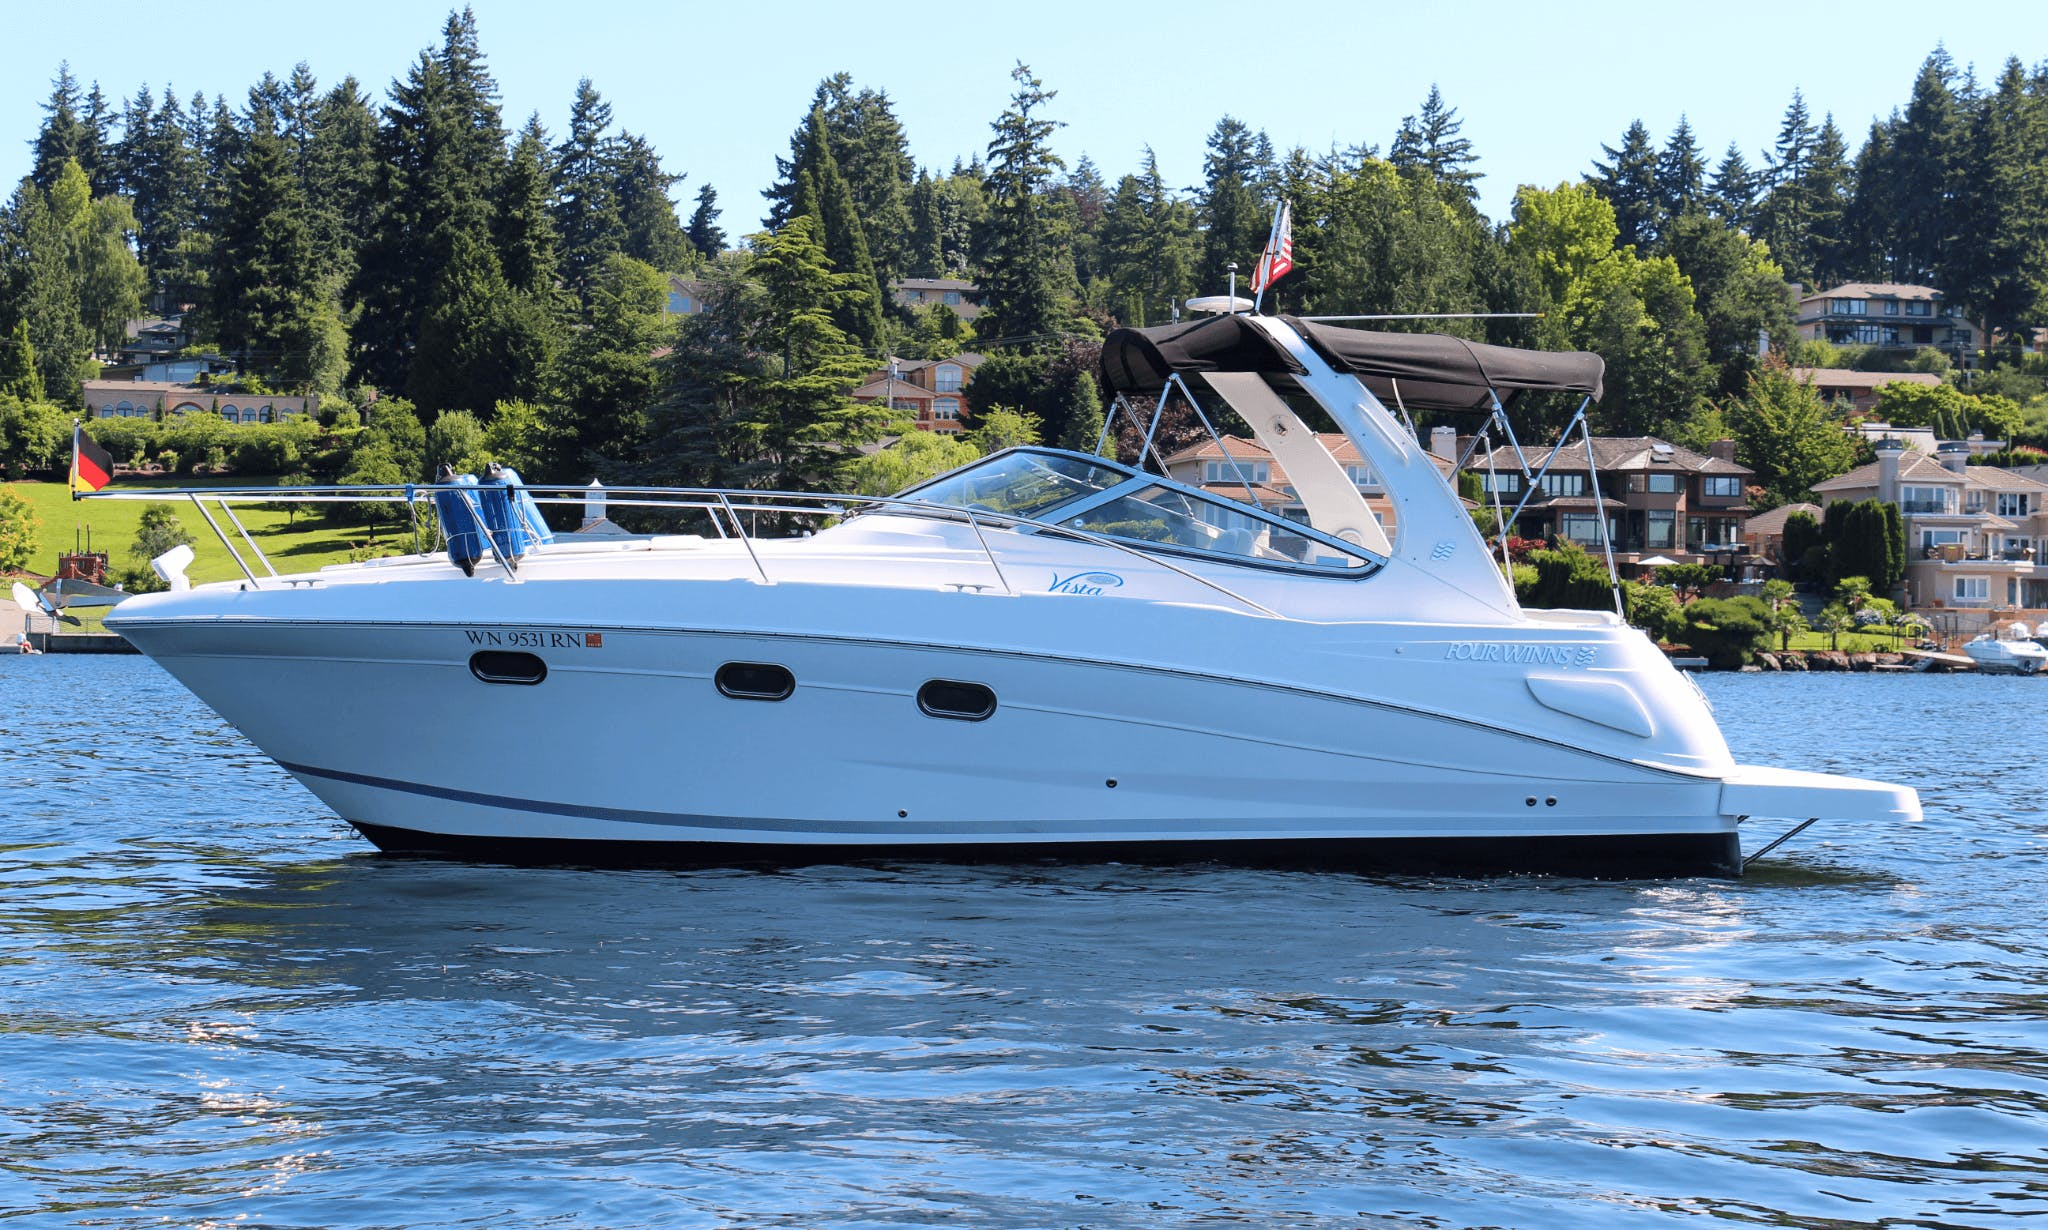 Charter this exceptional Express Cruiser, Rental In Bellevue & Seattle, WA